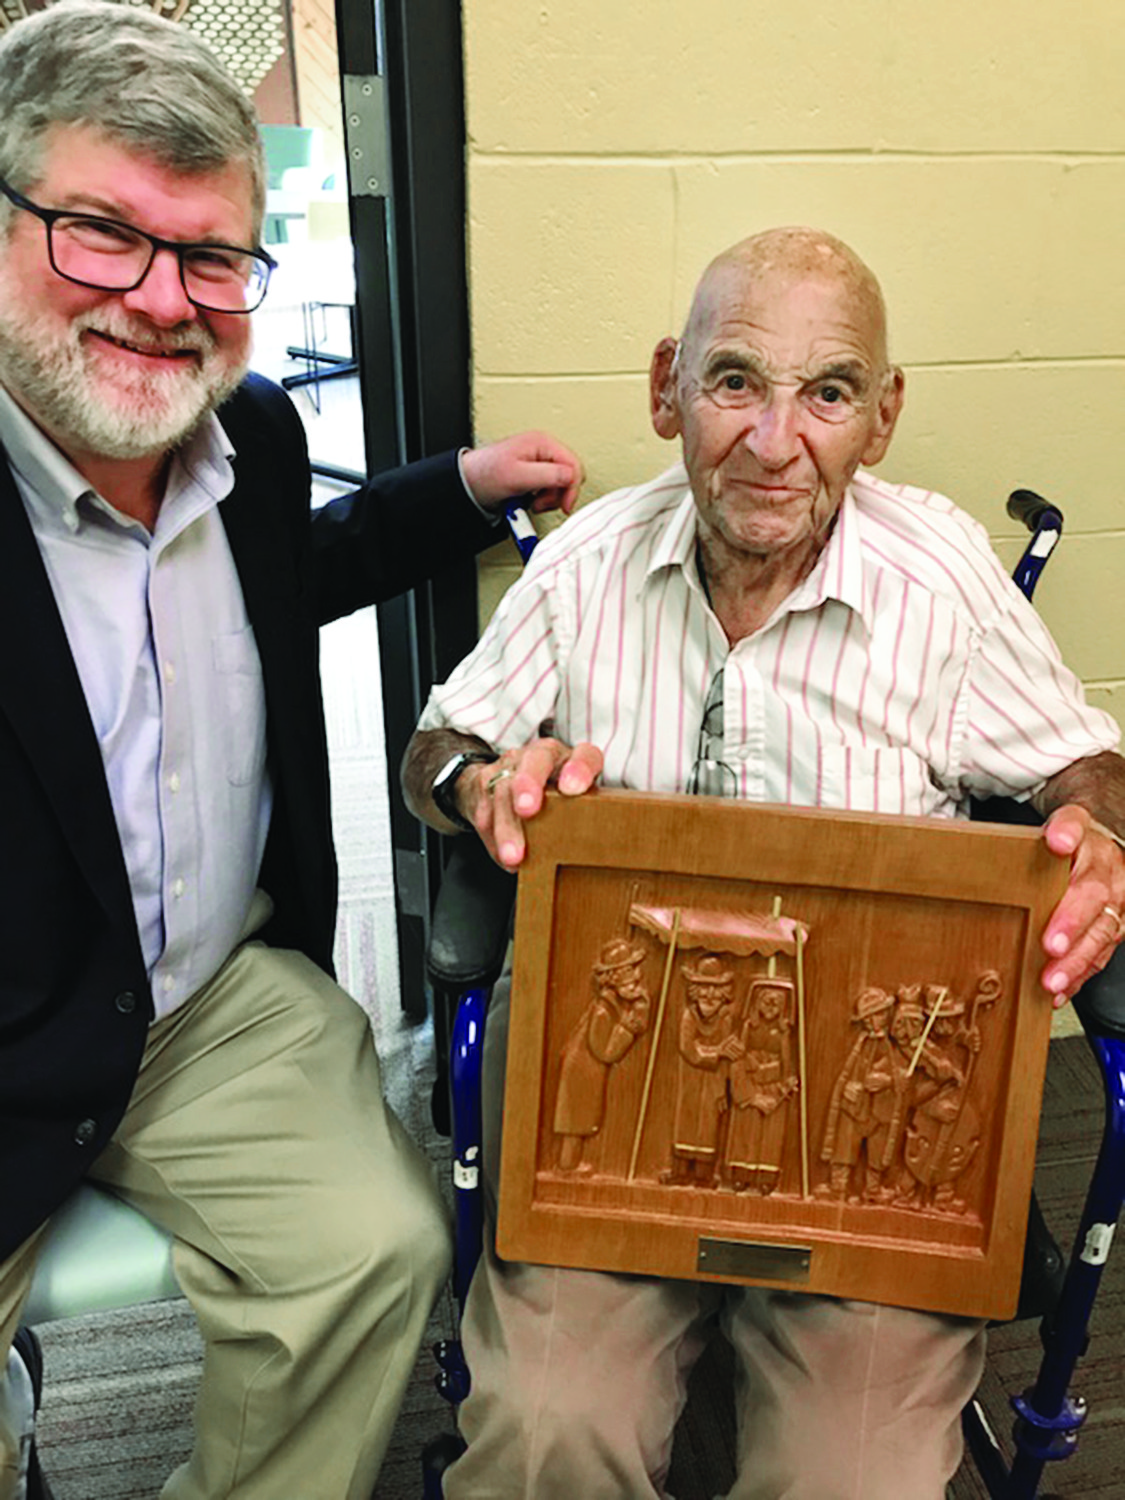 Tamarisk resident donates his hand-carved work of art to Temple